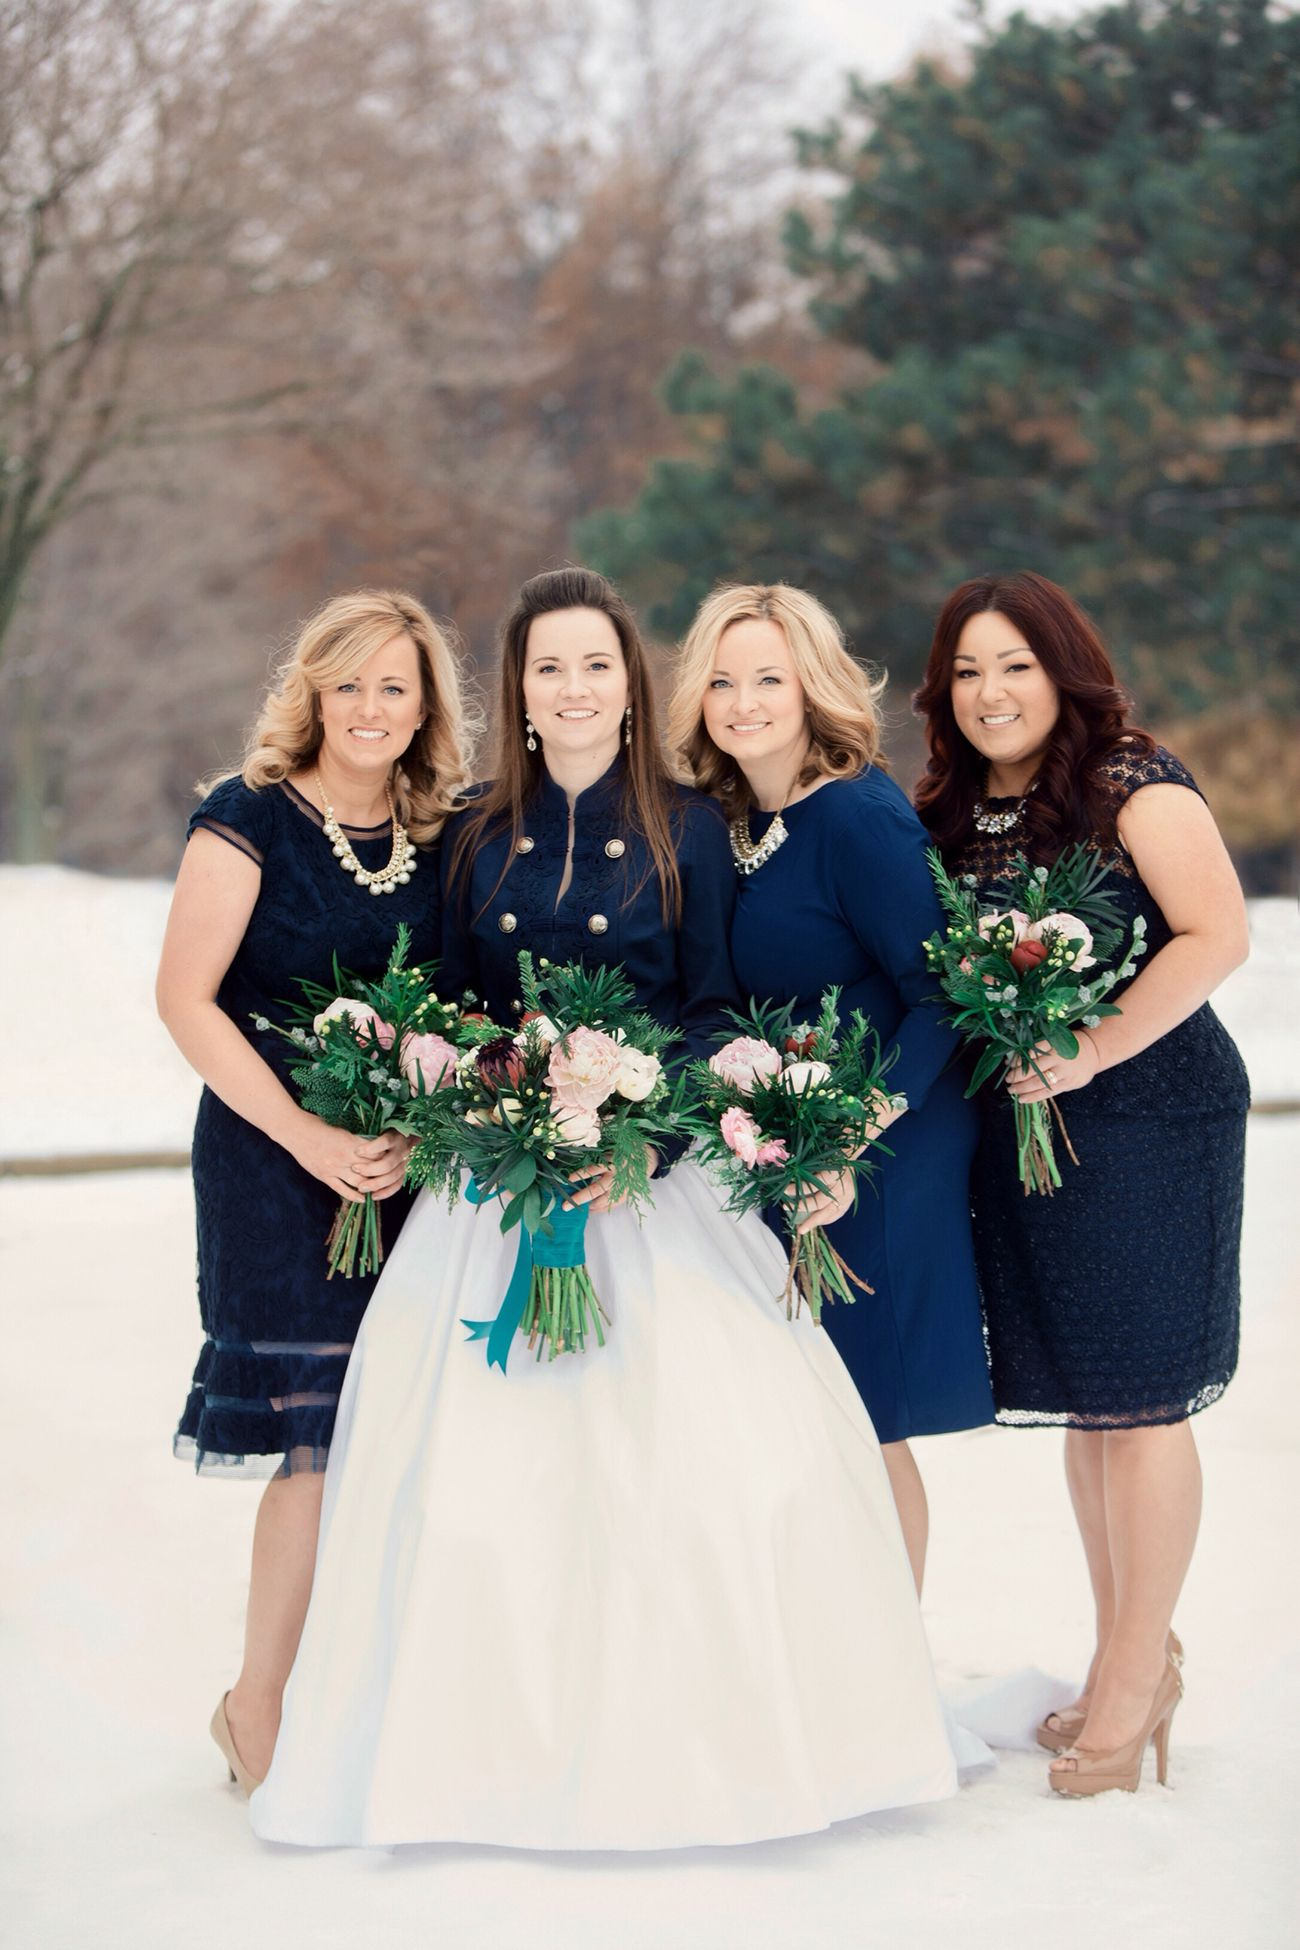 Navy bridesmaids dresses winter wedding colors st louis wedding navy bridesmaids dresses winter wedding colors st louis wedding winter wedding flowers ombrellifo Image collections